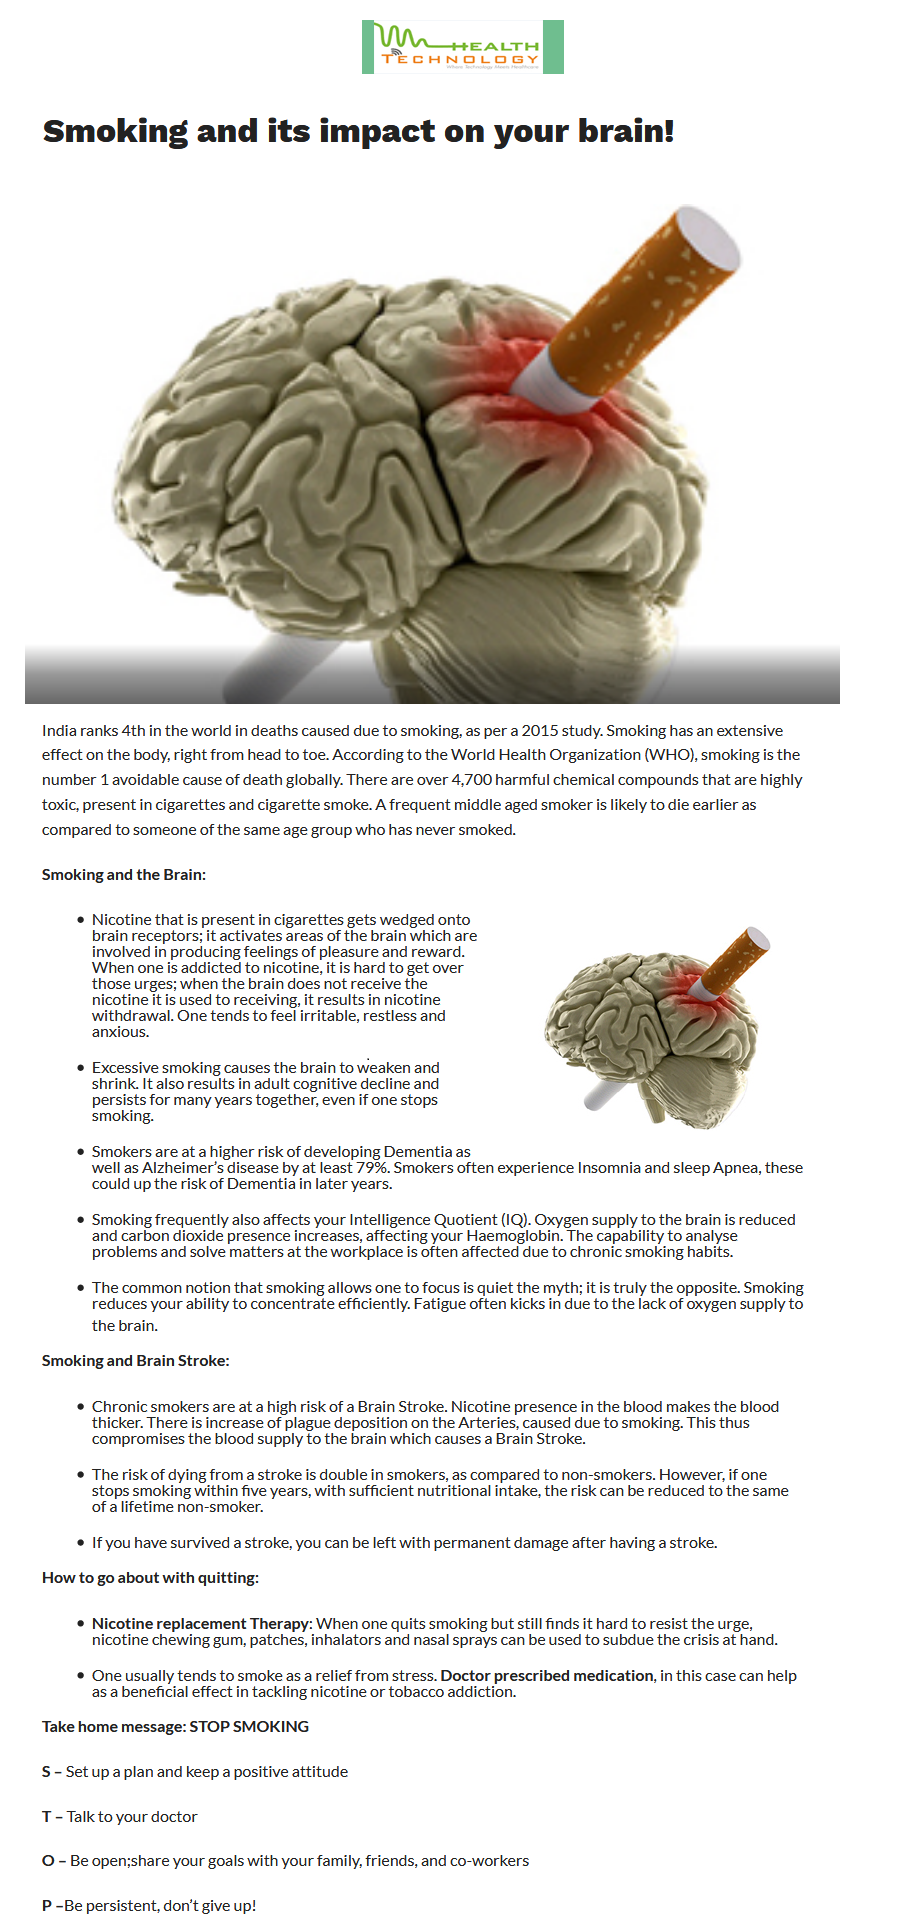 News - 5 Must Know Facts about Smoking and Brain Health